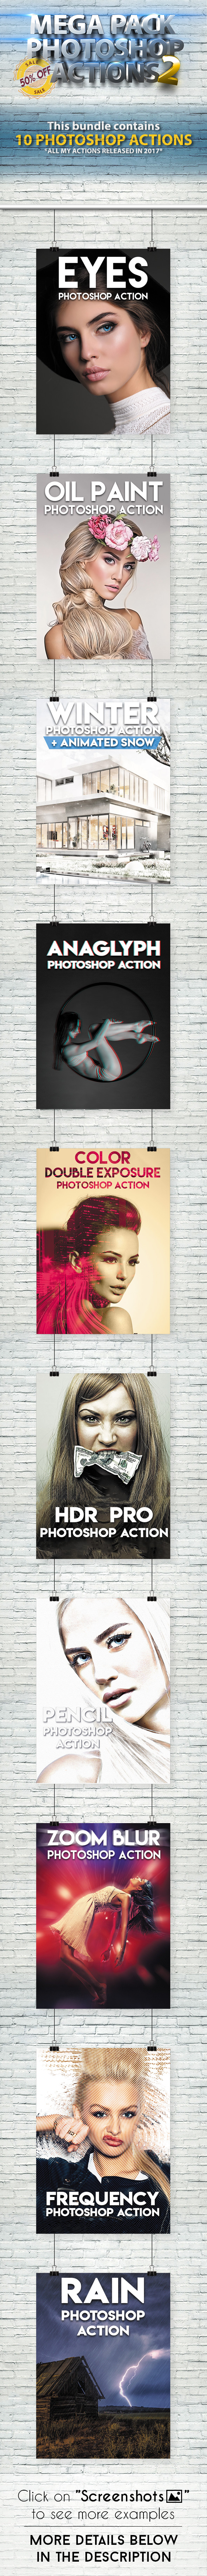 Mega Pack 2 Photoshop Actions Bundle - Photo Effects Actions